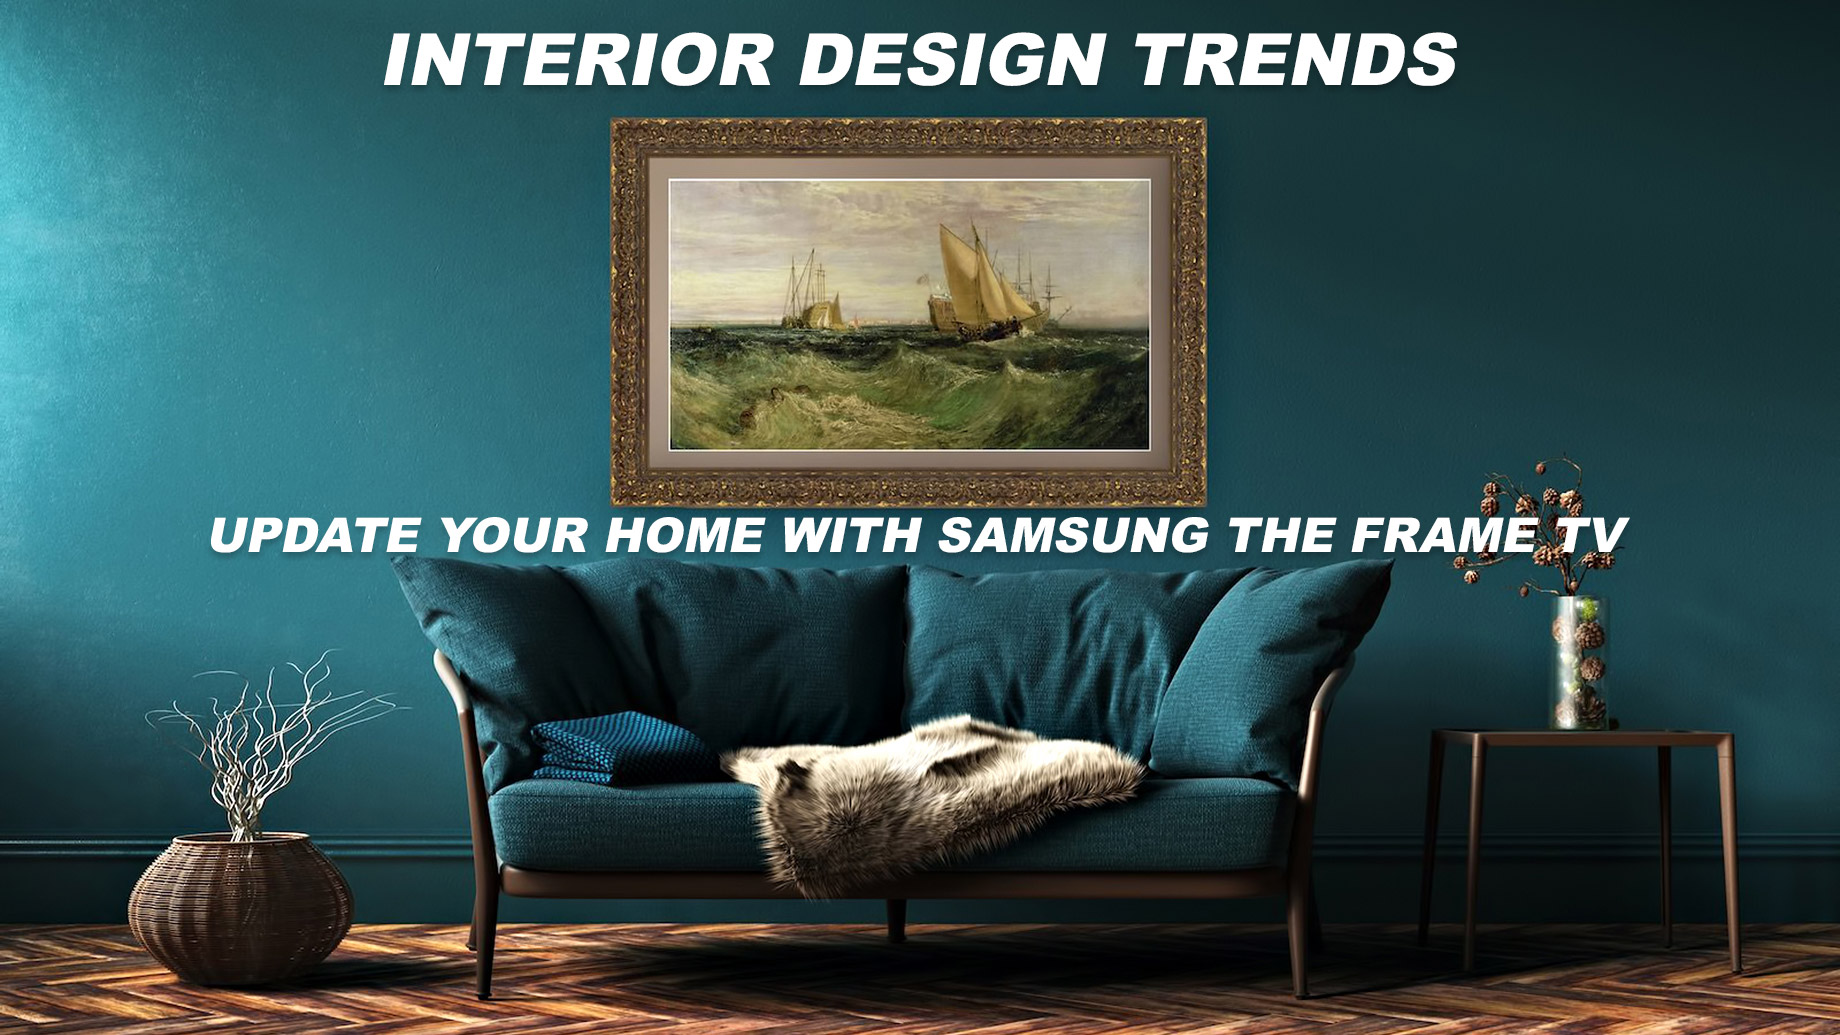 Interior Design Trends - Update Your Home with Samsung the Frame TV